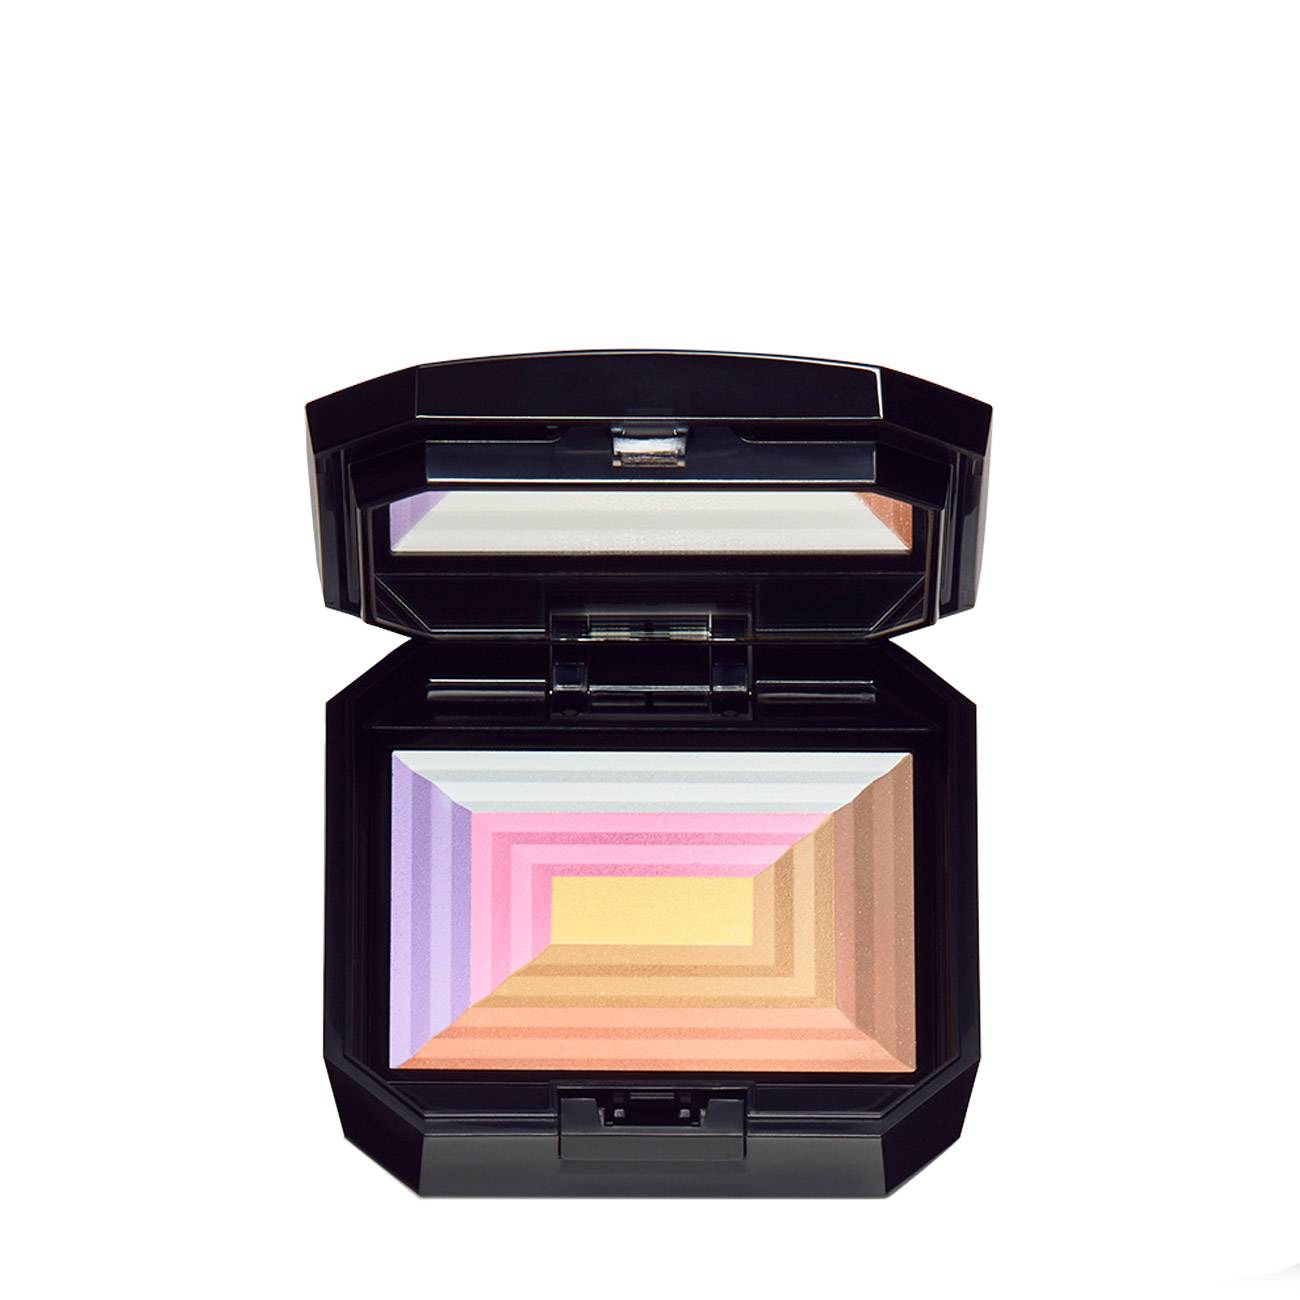 7 LIGHTS POWDER ILLUMINATOR imagine produs